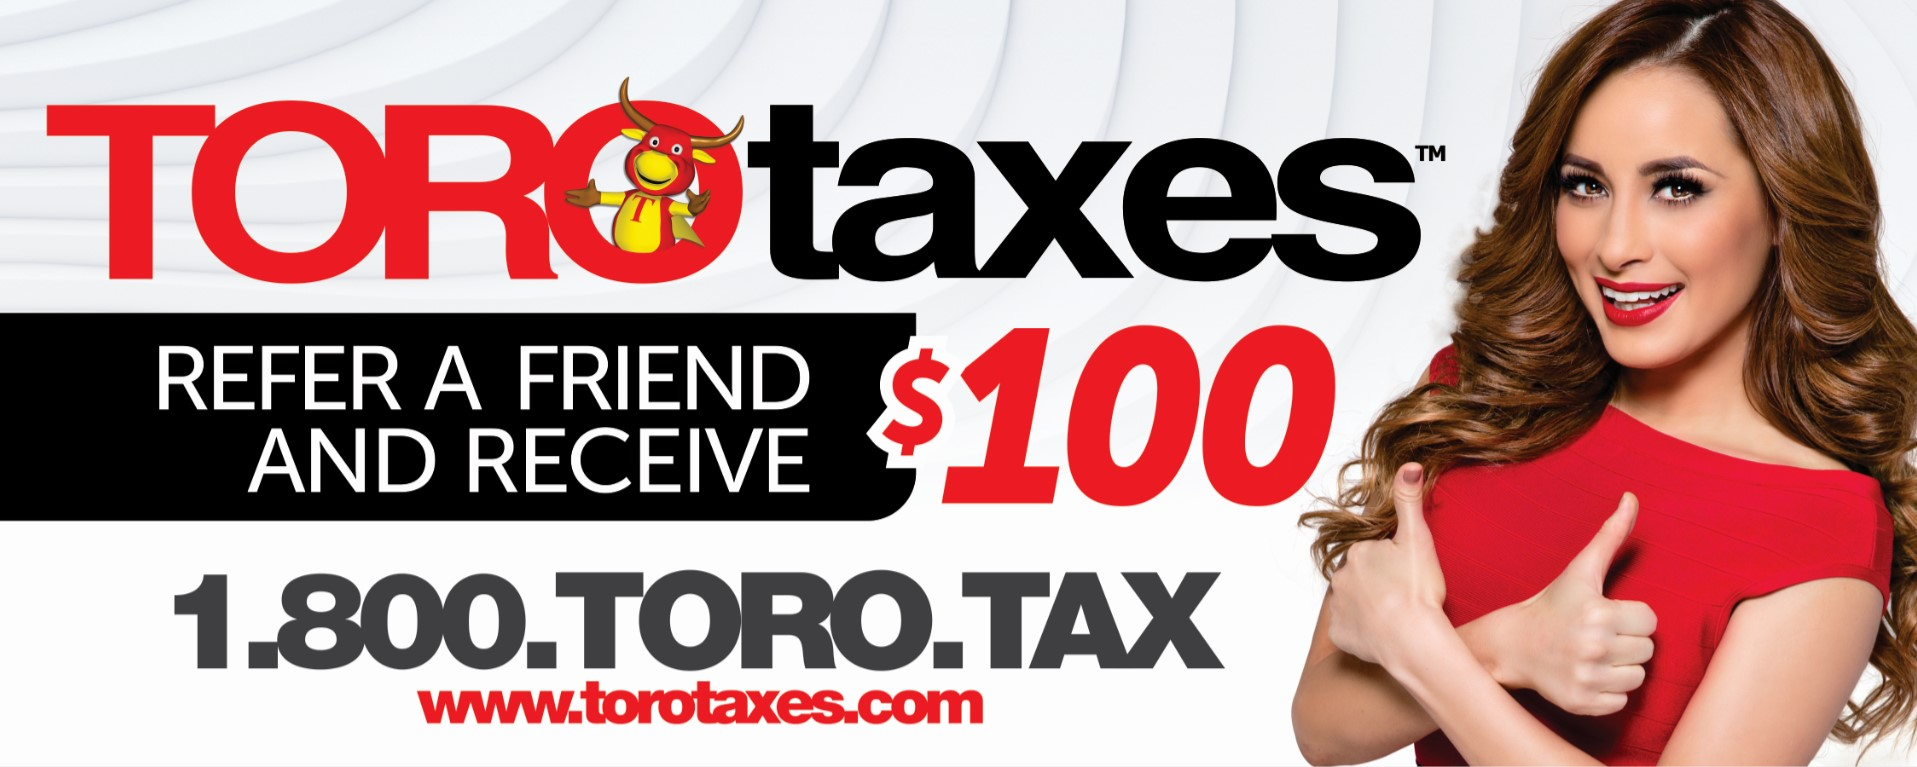 Toro Taxes refer a friend for $100